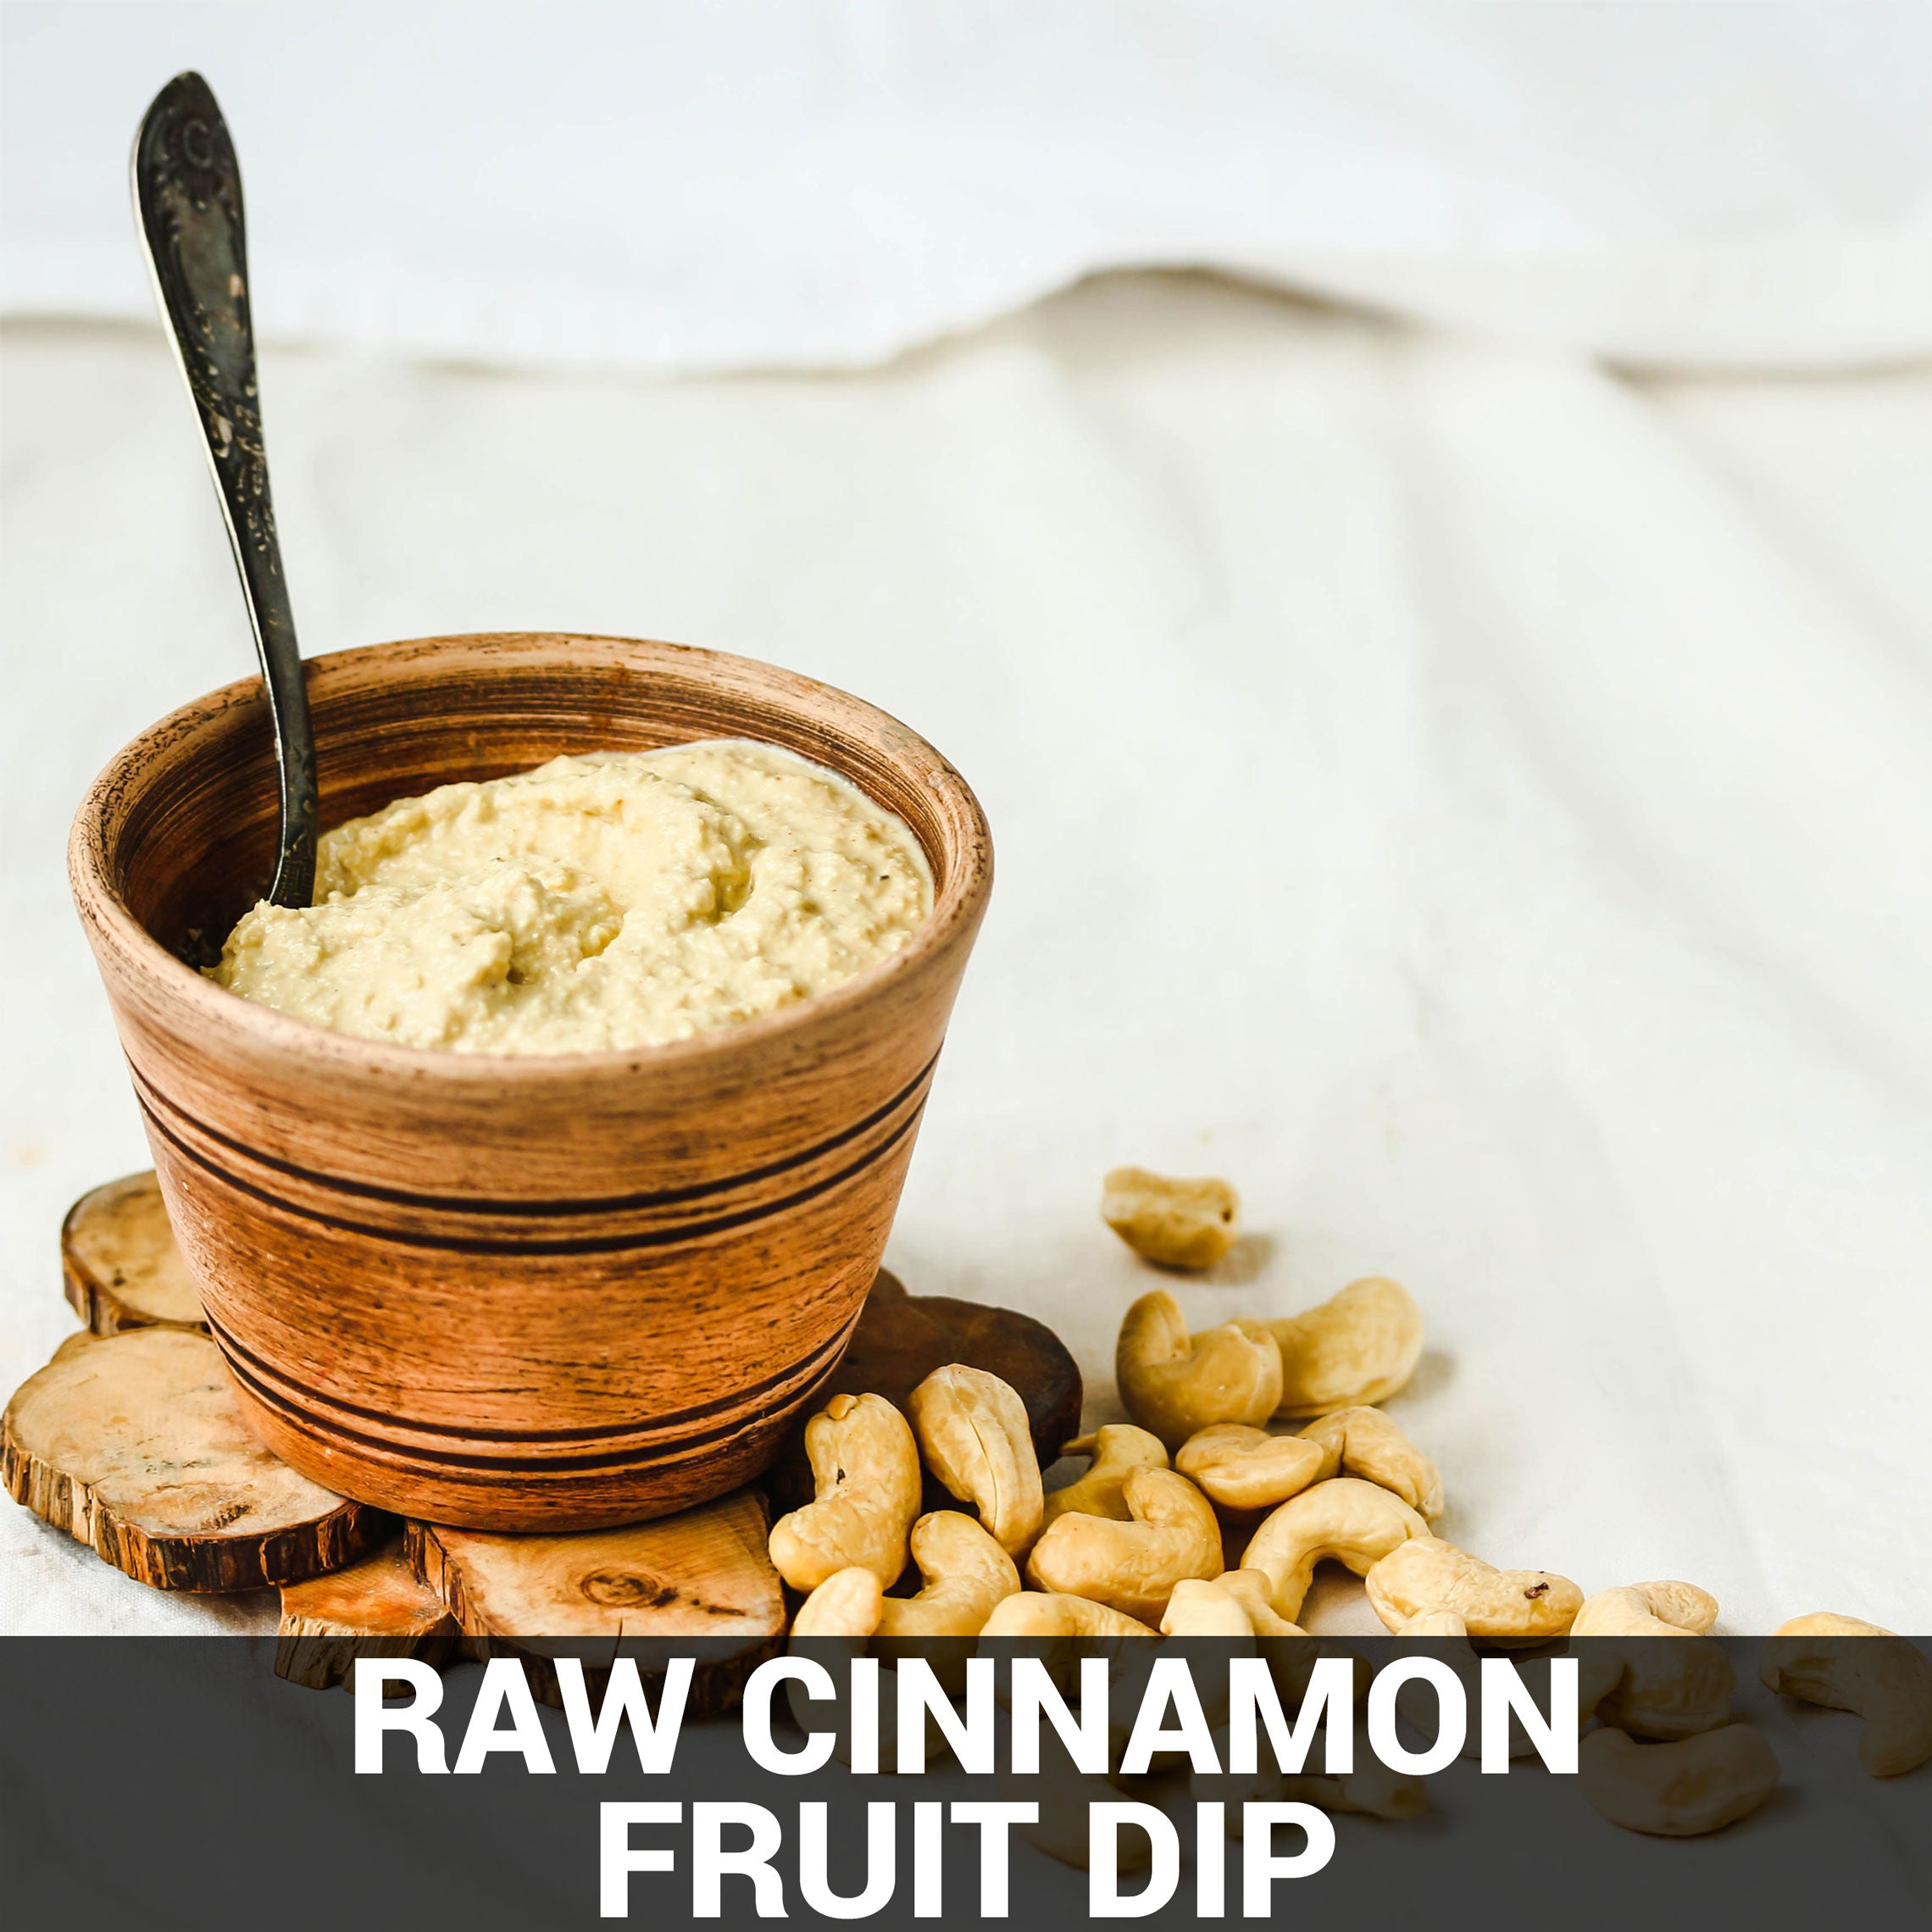 Raw Cinnamon Fruit Dip Recipe - Foods Alive